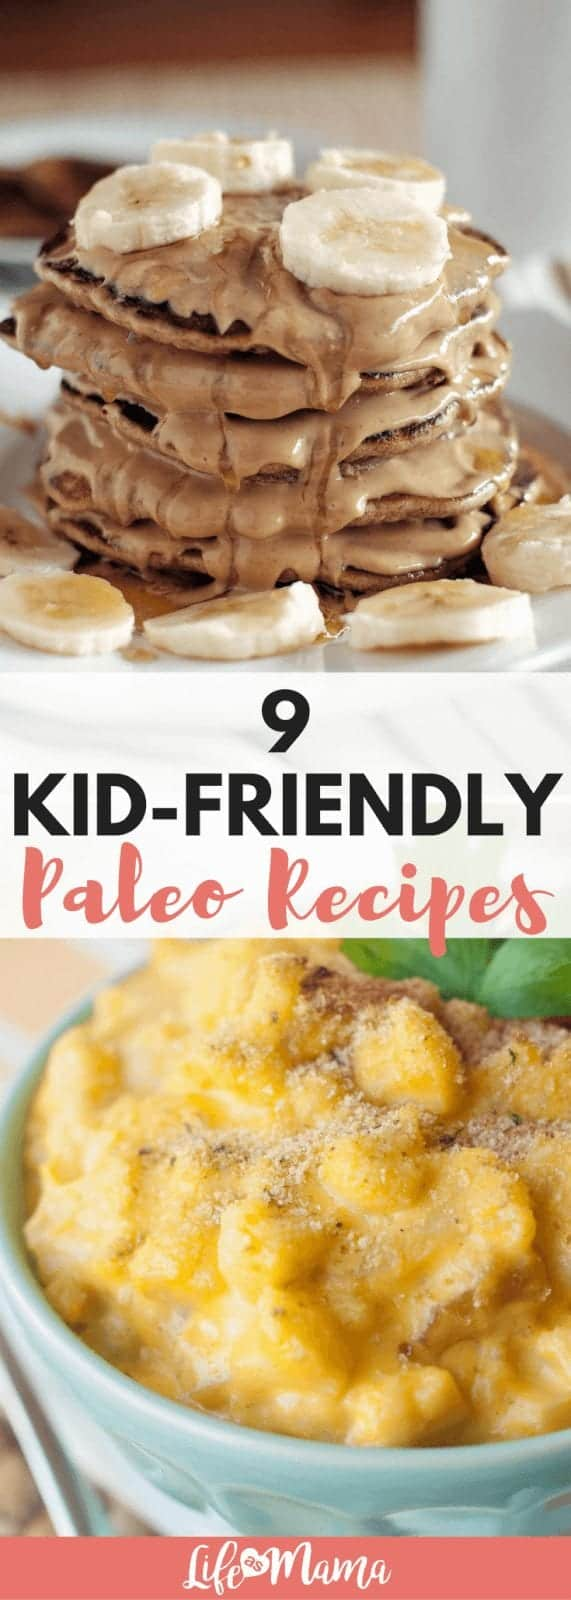 kid-friendly paleo recipes